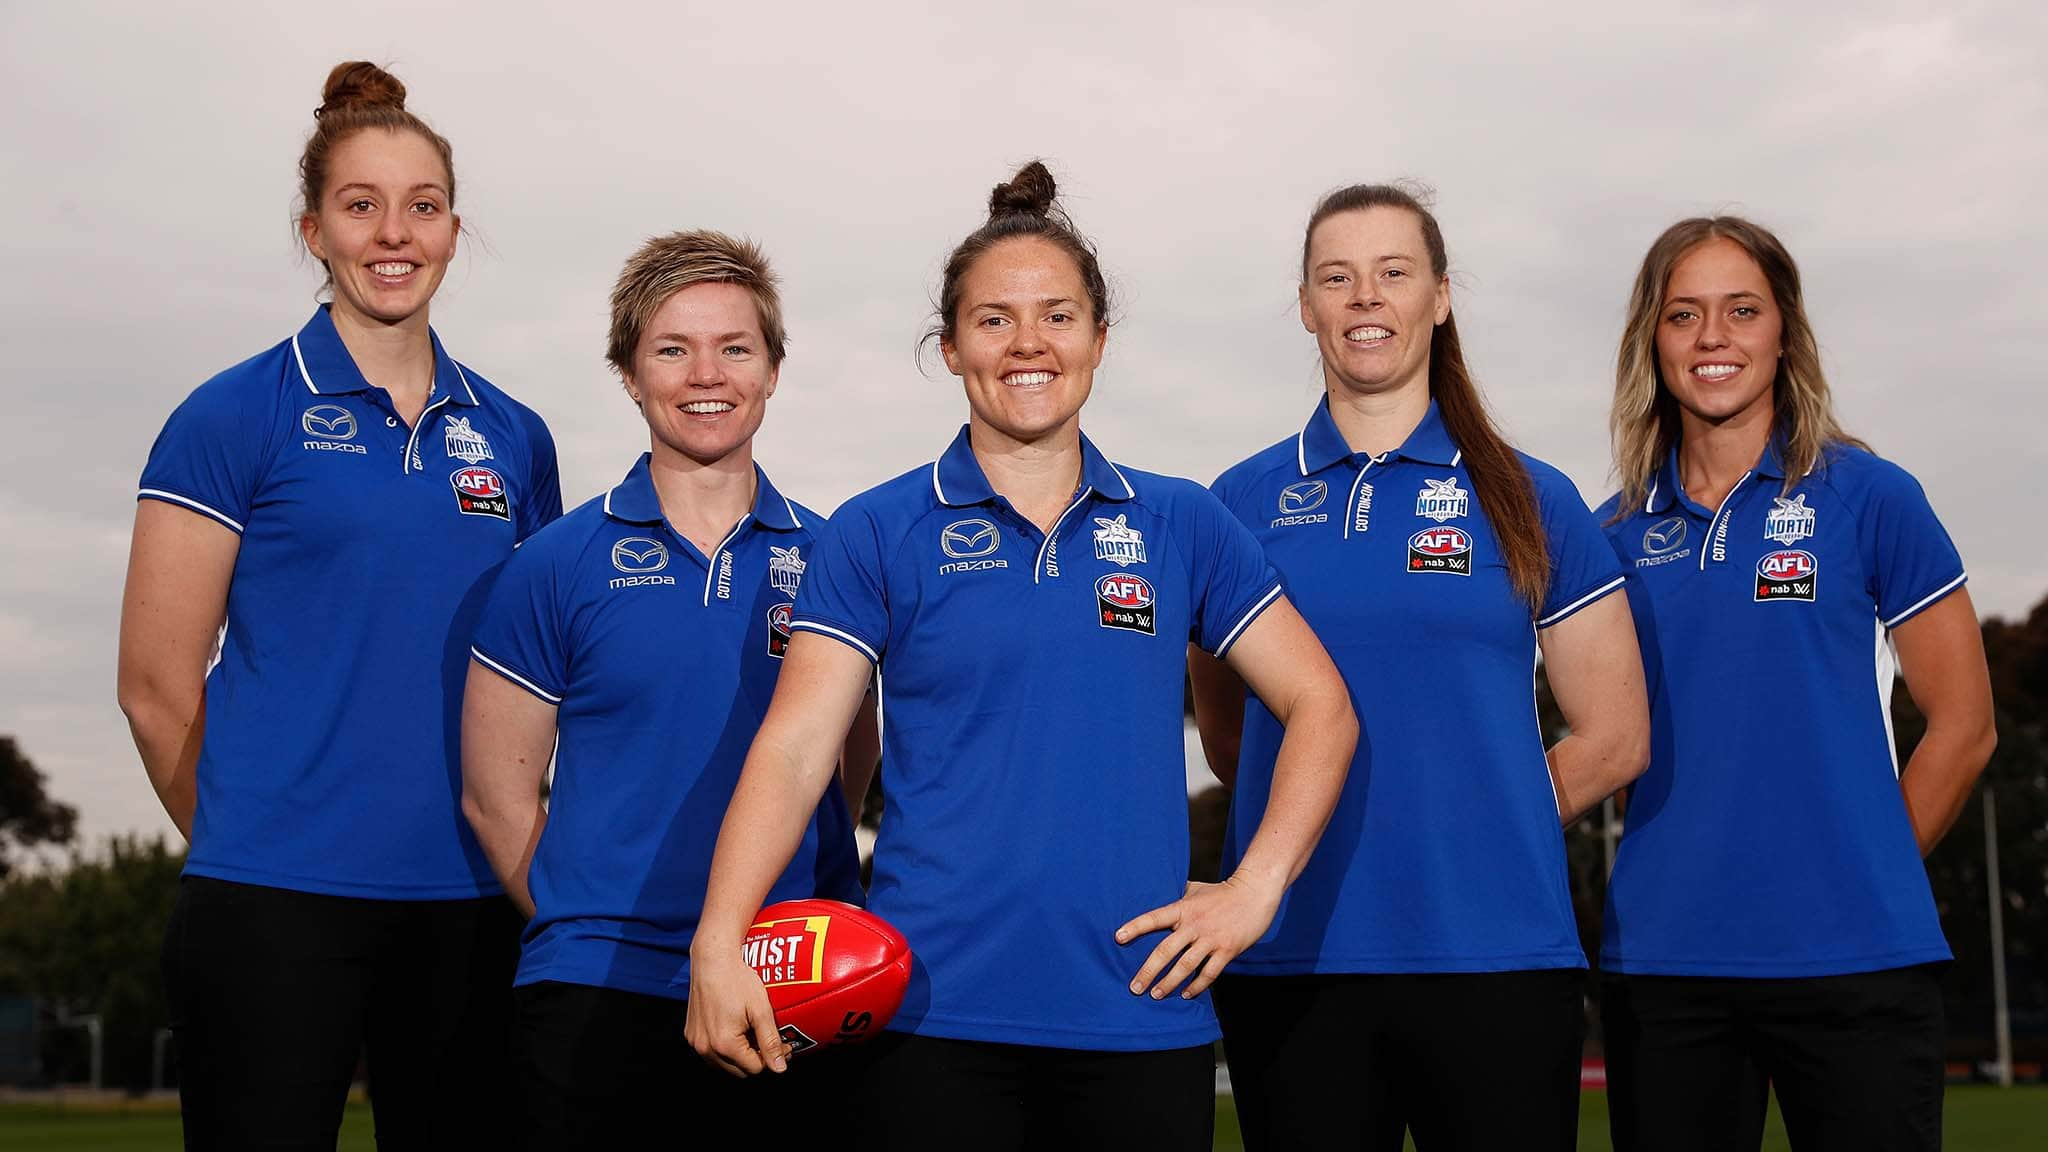 Emma Kearney will lead the Roos into battle in 2019 - AFLW,North Melbourne Tasmanian Kangaroos,Emma Kearney